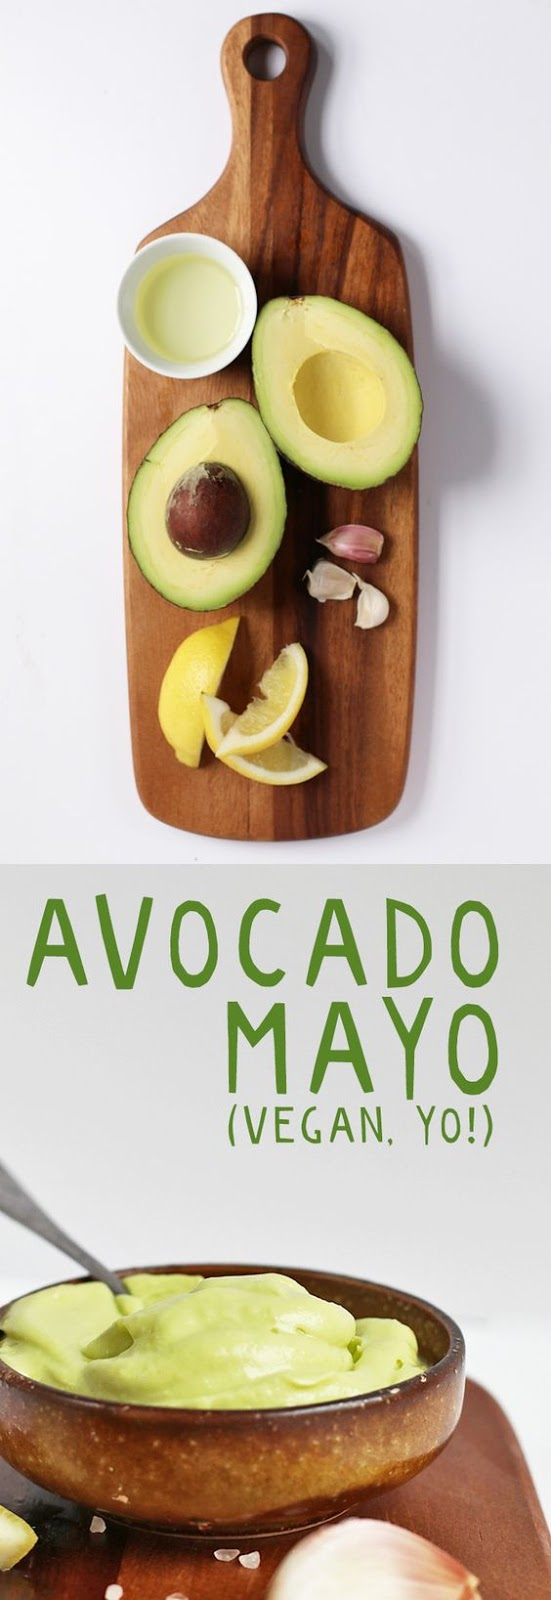 VEGAN AVOCADO MAYO (OIL FREE!) #avocado #mayo #oilfree #vegan #veganrecipes #veggies